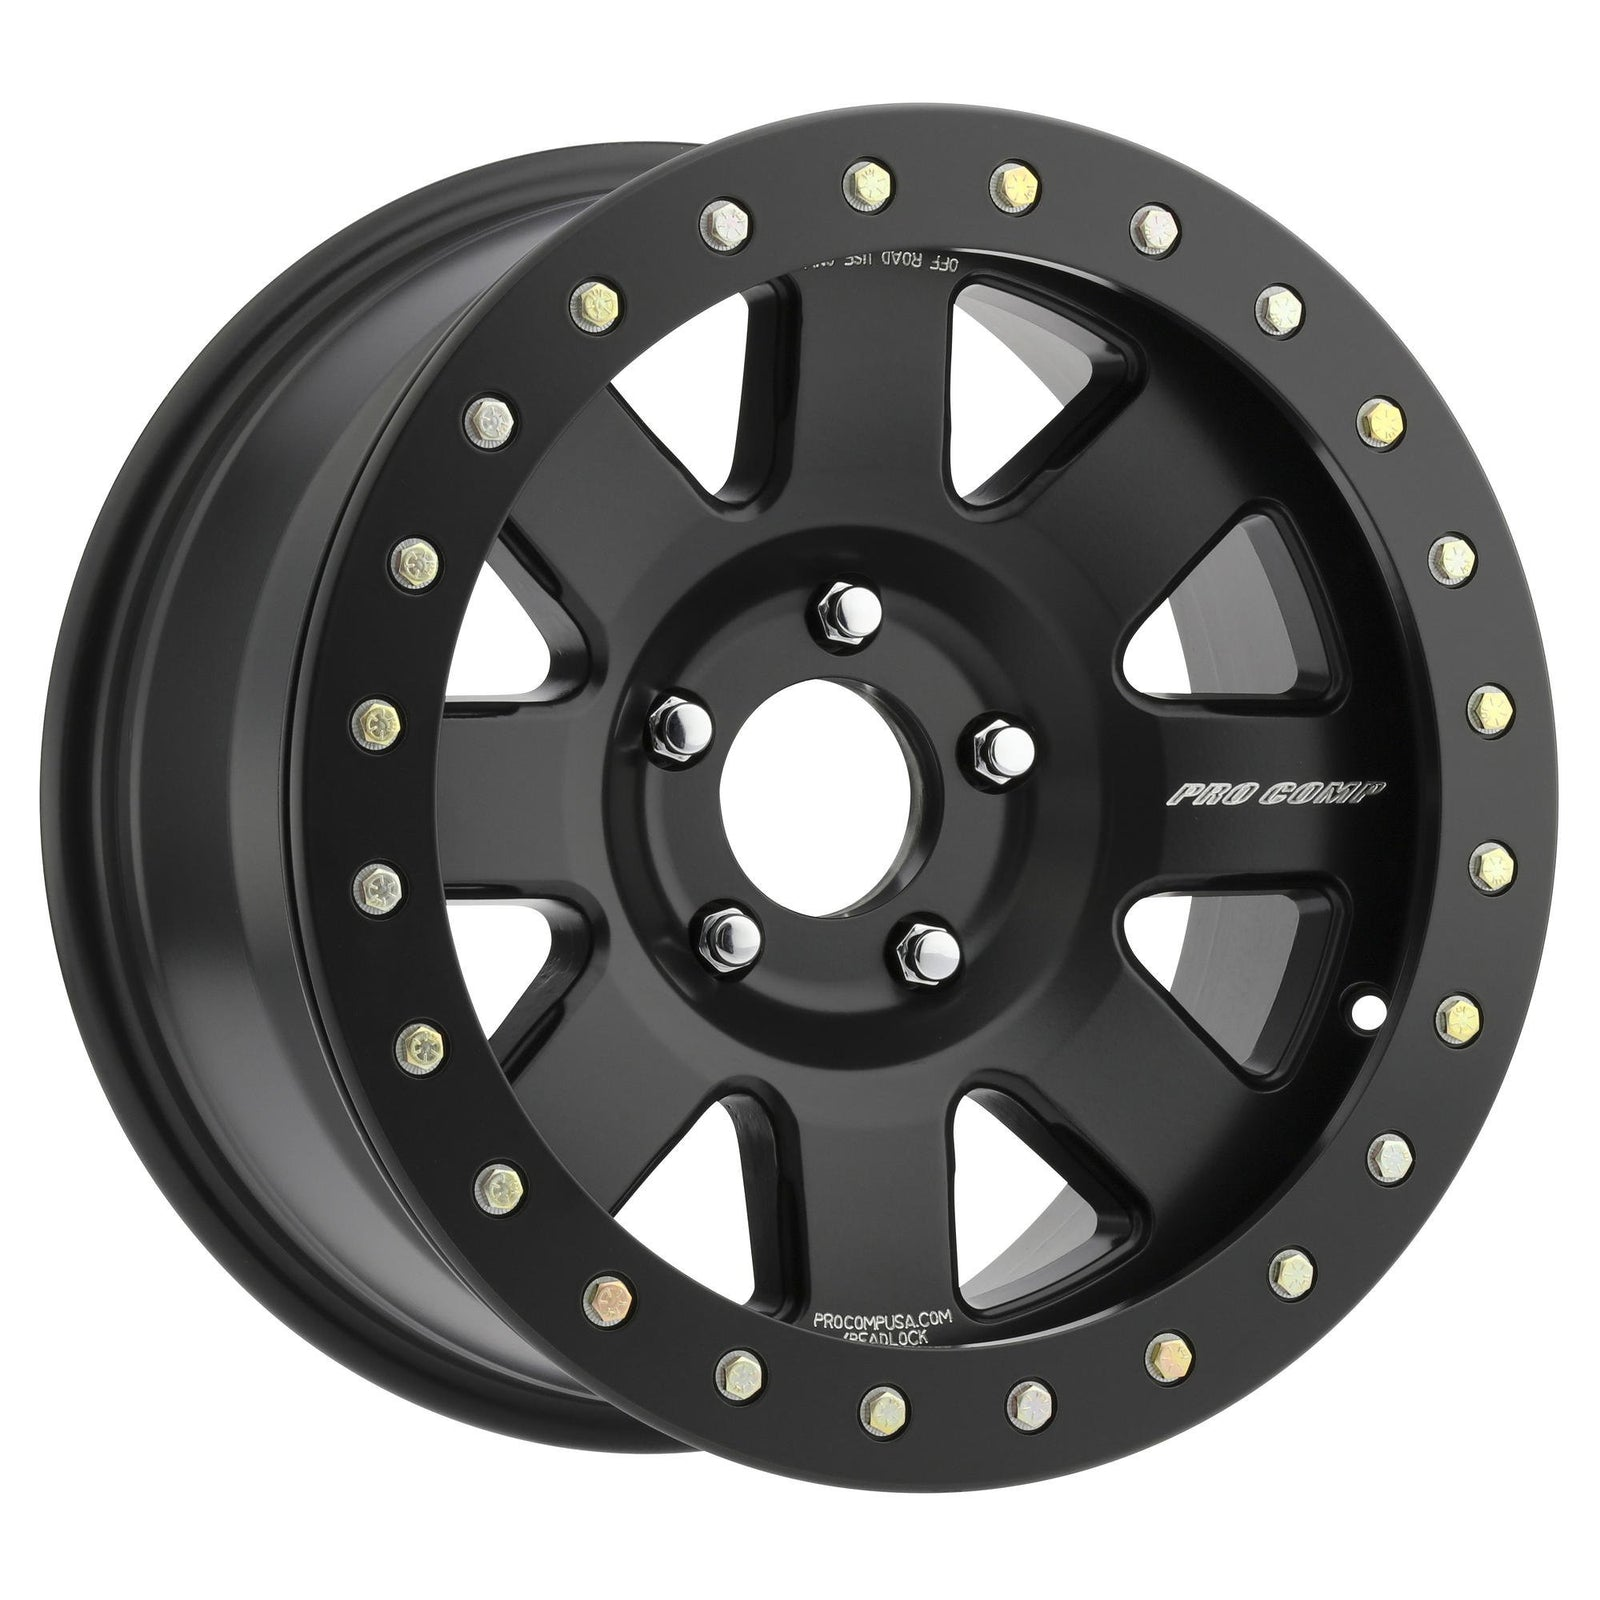 Pro Comp 75 Series Trilogy Race, 17x9 Wheel with 6x6.5 Bolt Pattern - Satin Black - 5175-796647